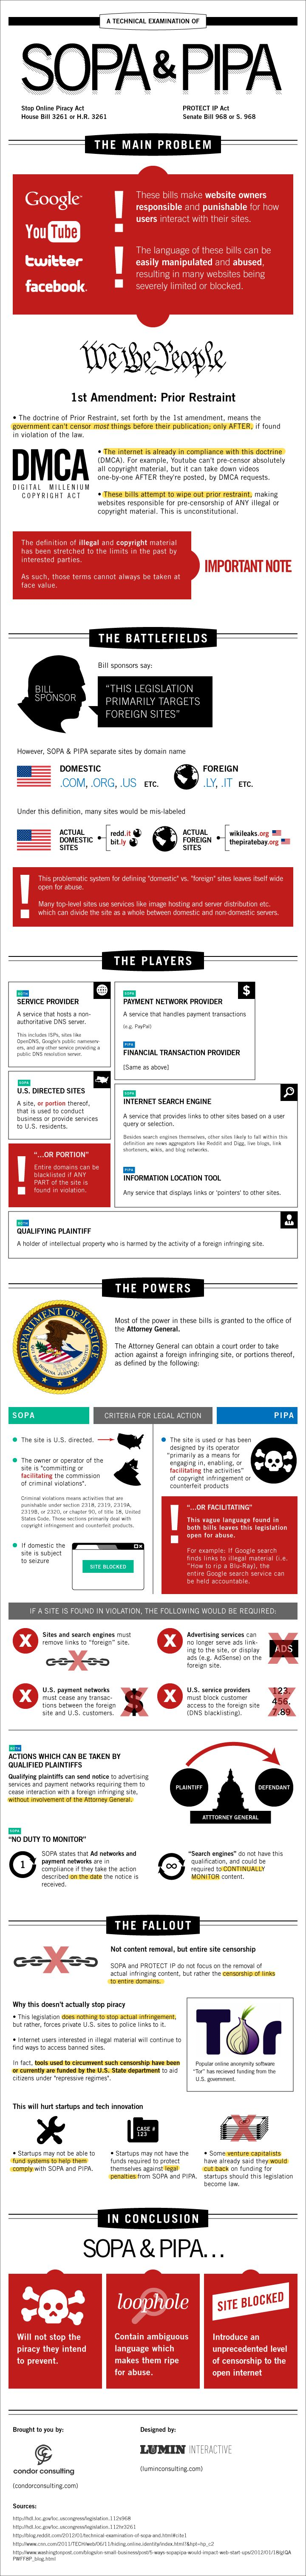 A technical examination of SOPA and PIPA [infographic]